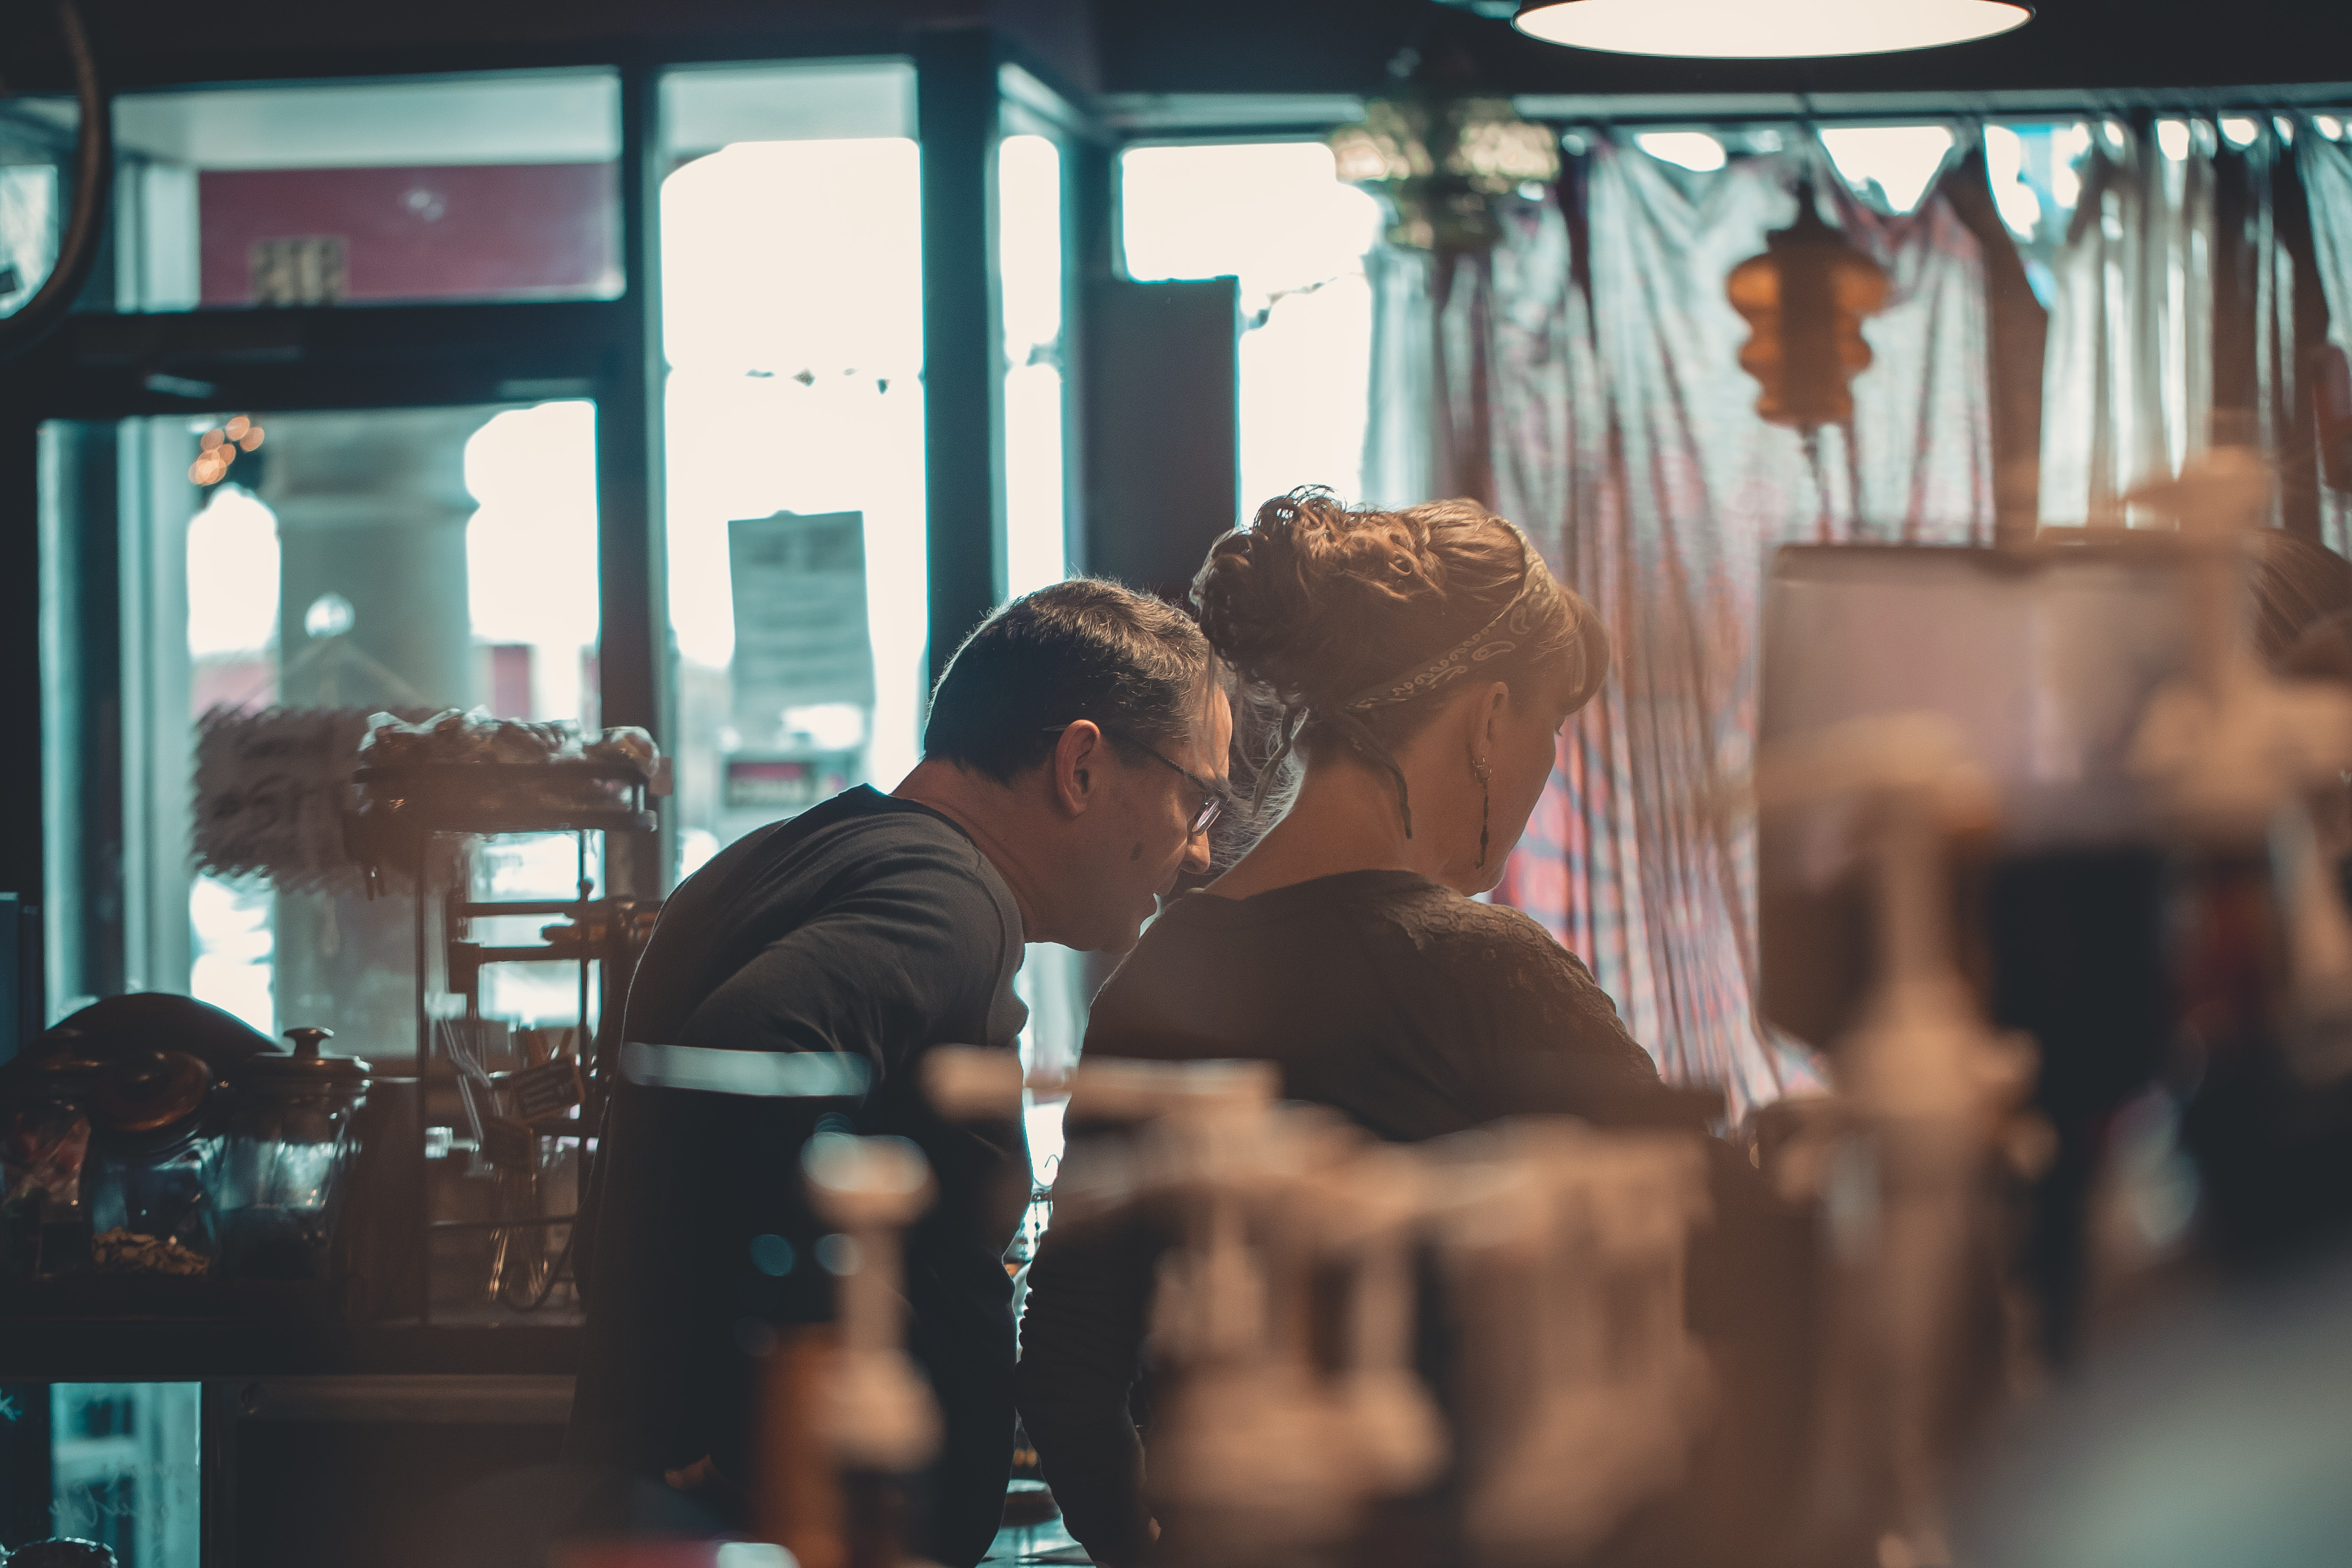 Two people looking through store window